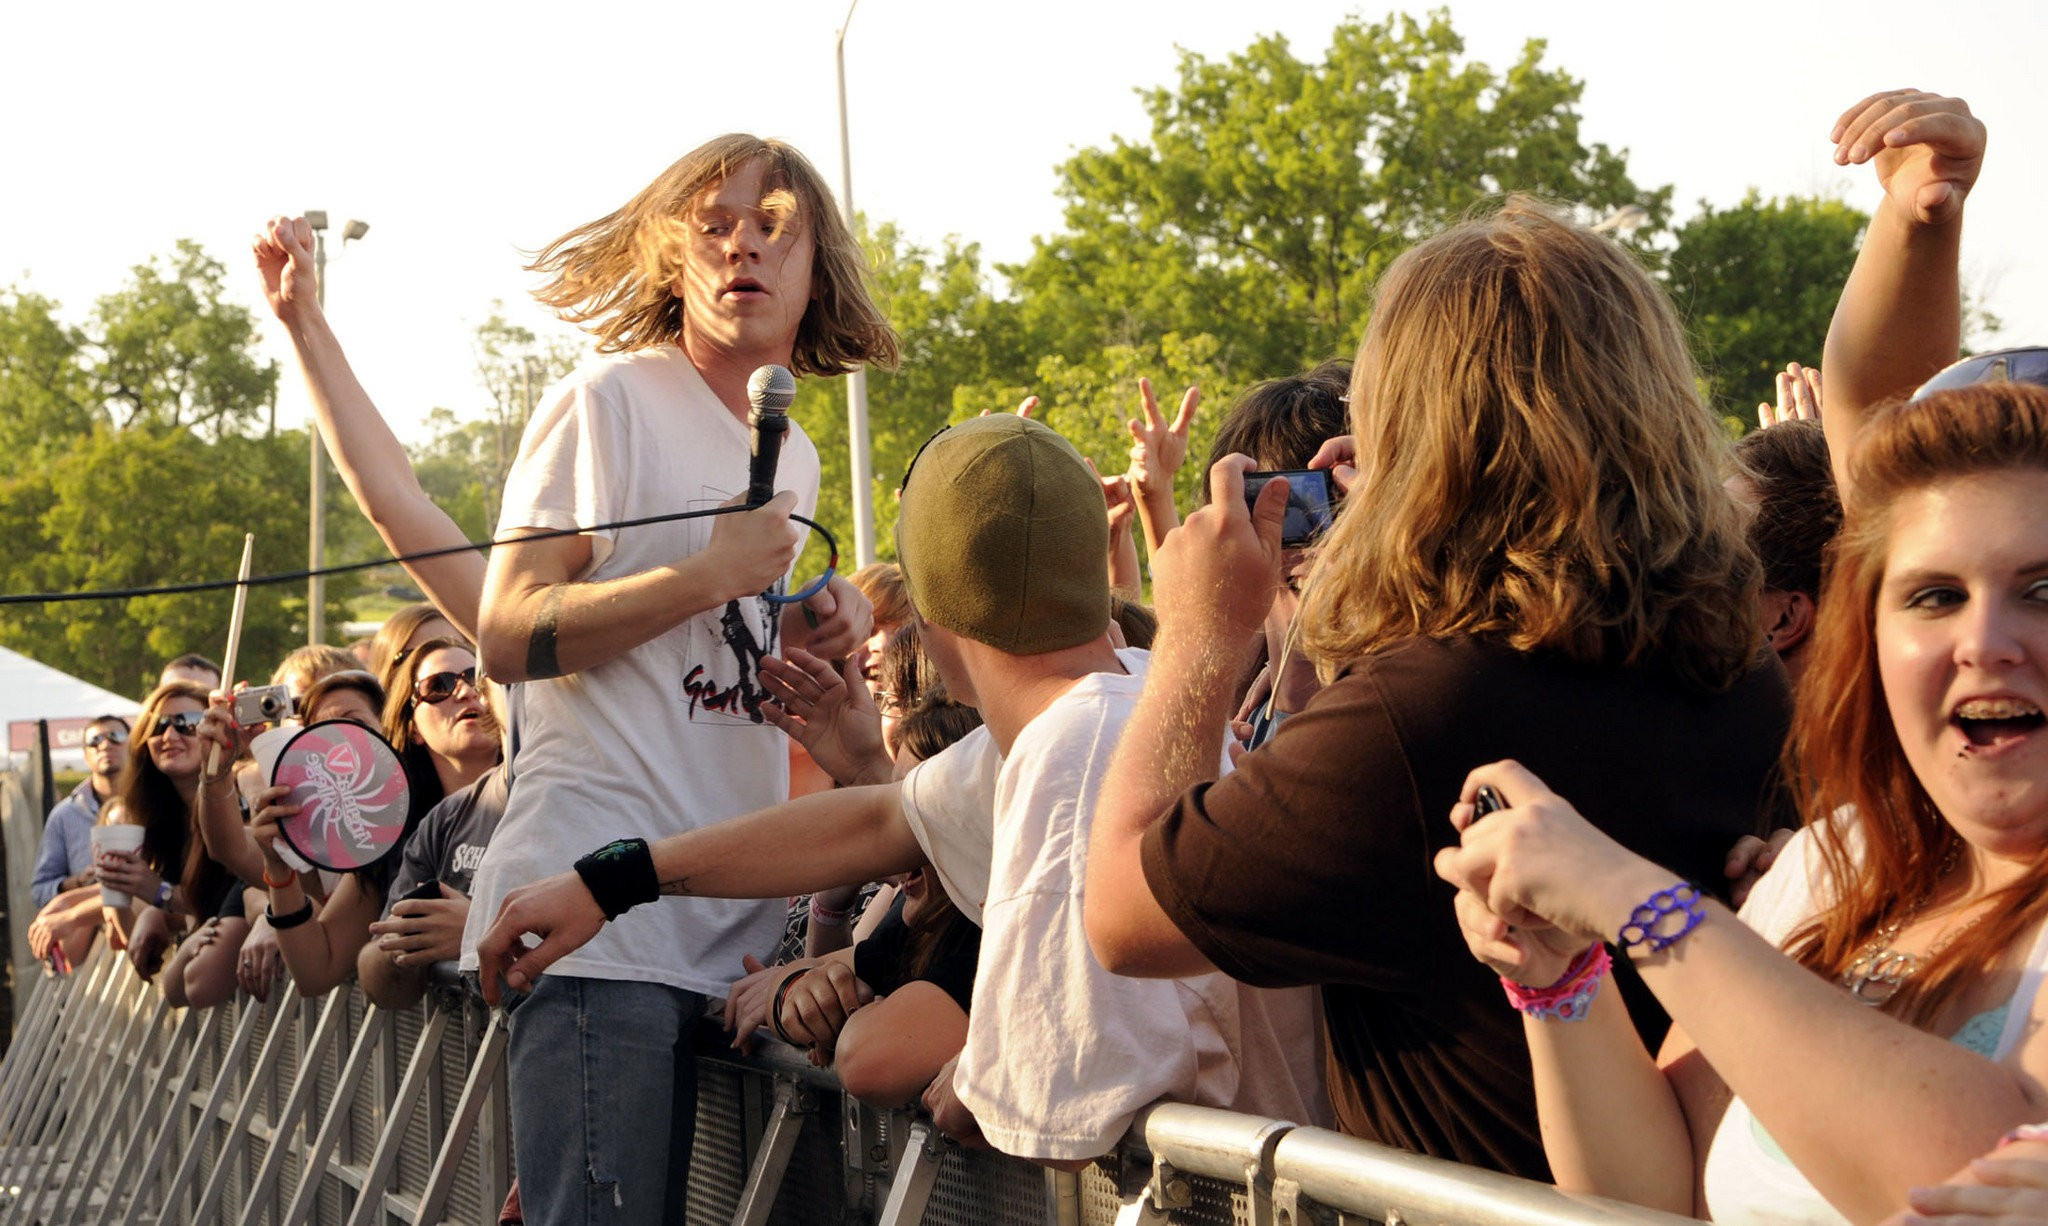 How They Sounded Cage The Elephant Lead Singer Surfs The